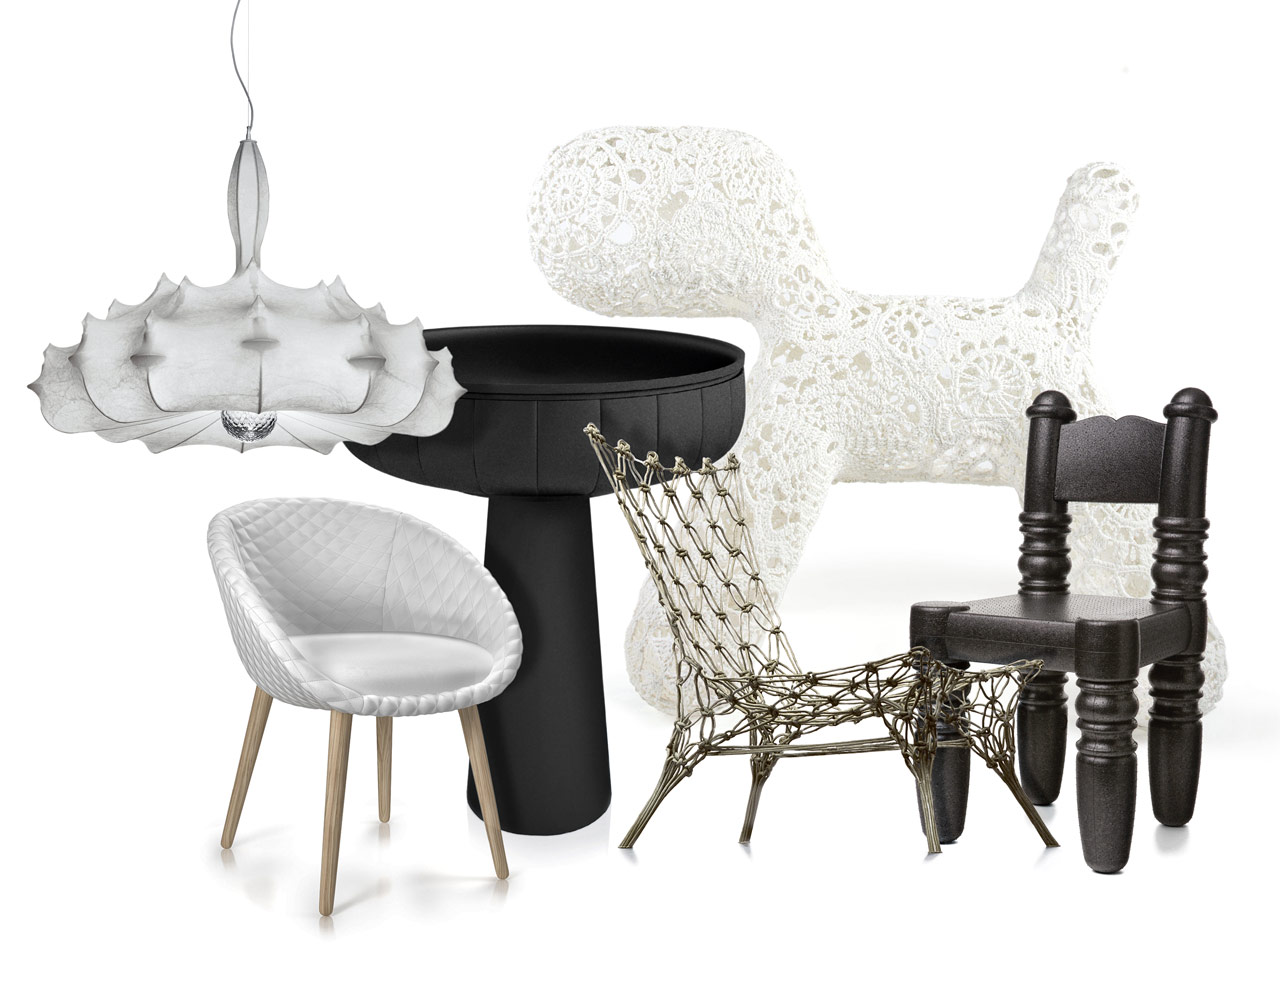 Zeppelin lampada, Flos 2005 Love sedia, Moooi 2013 Container Bowl, Moooi 2006 Knotted Chair, Droog 1996 Crochet Collection, Moooi 2015 Parent Chair, Moooi 2009